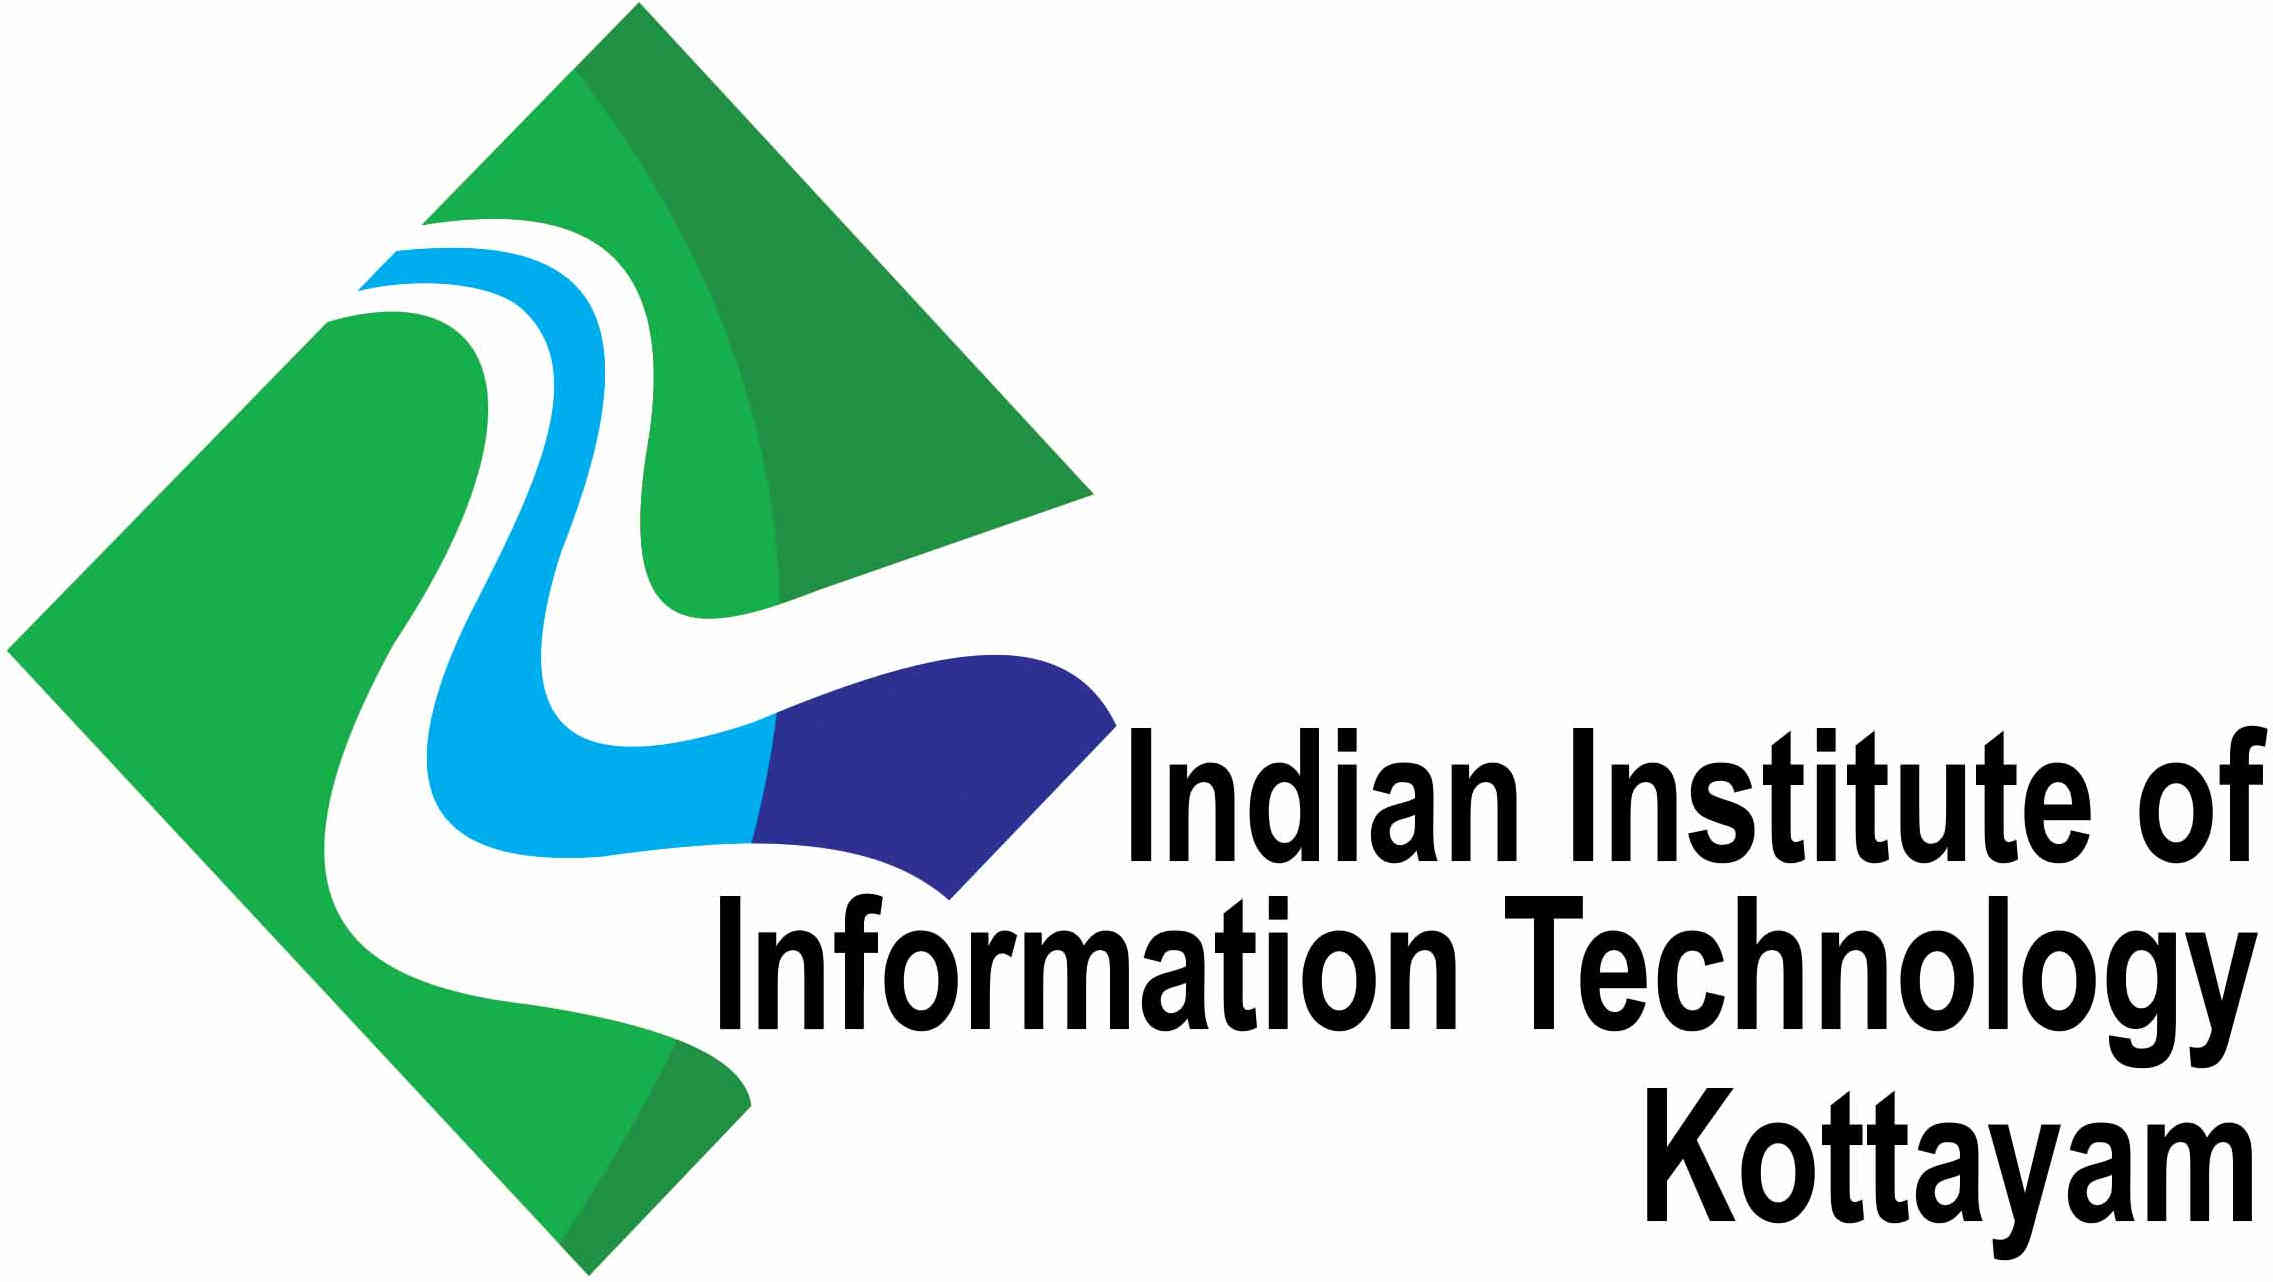 Faculty position at IIIT, Indian Institute of Information Technology Kottayam